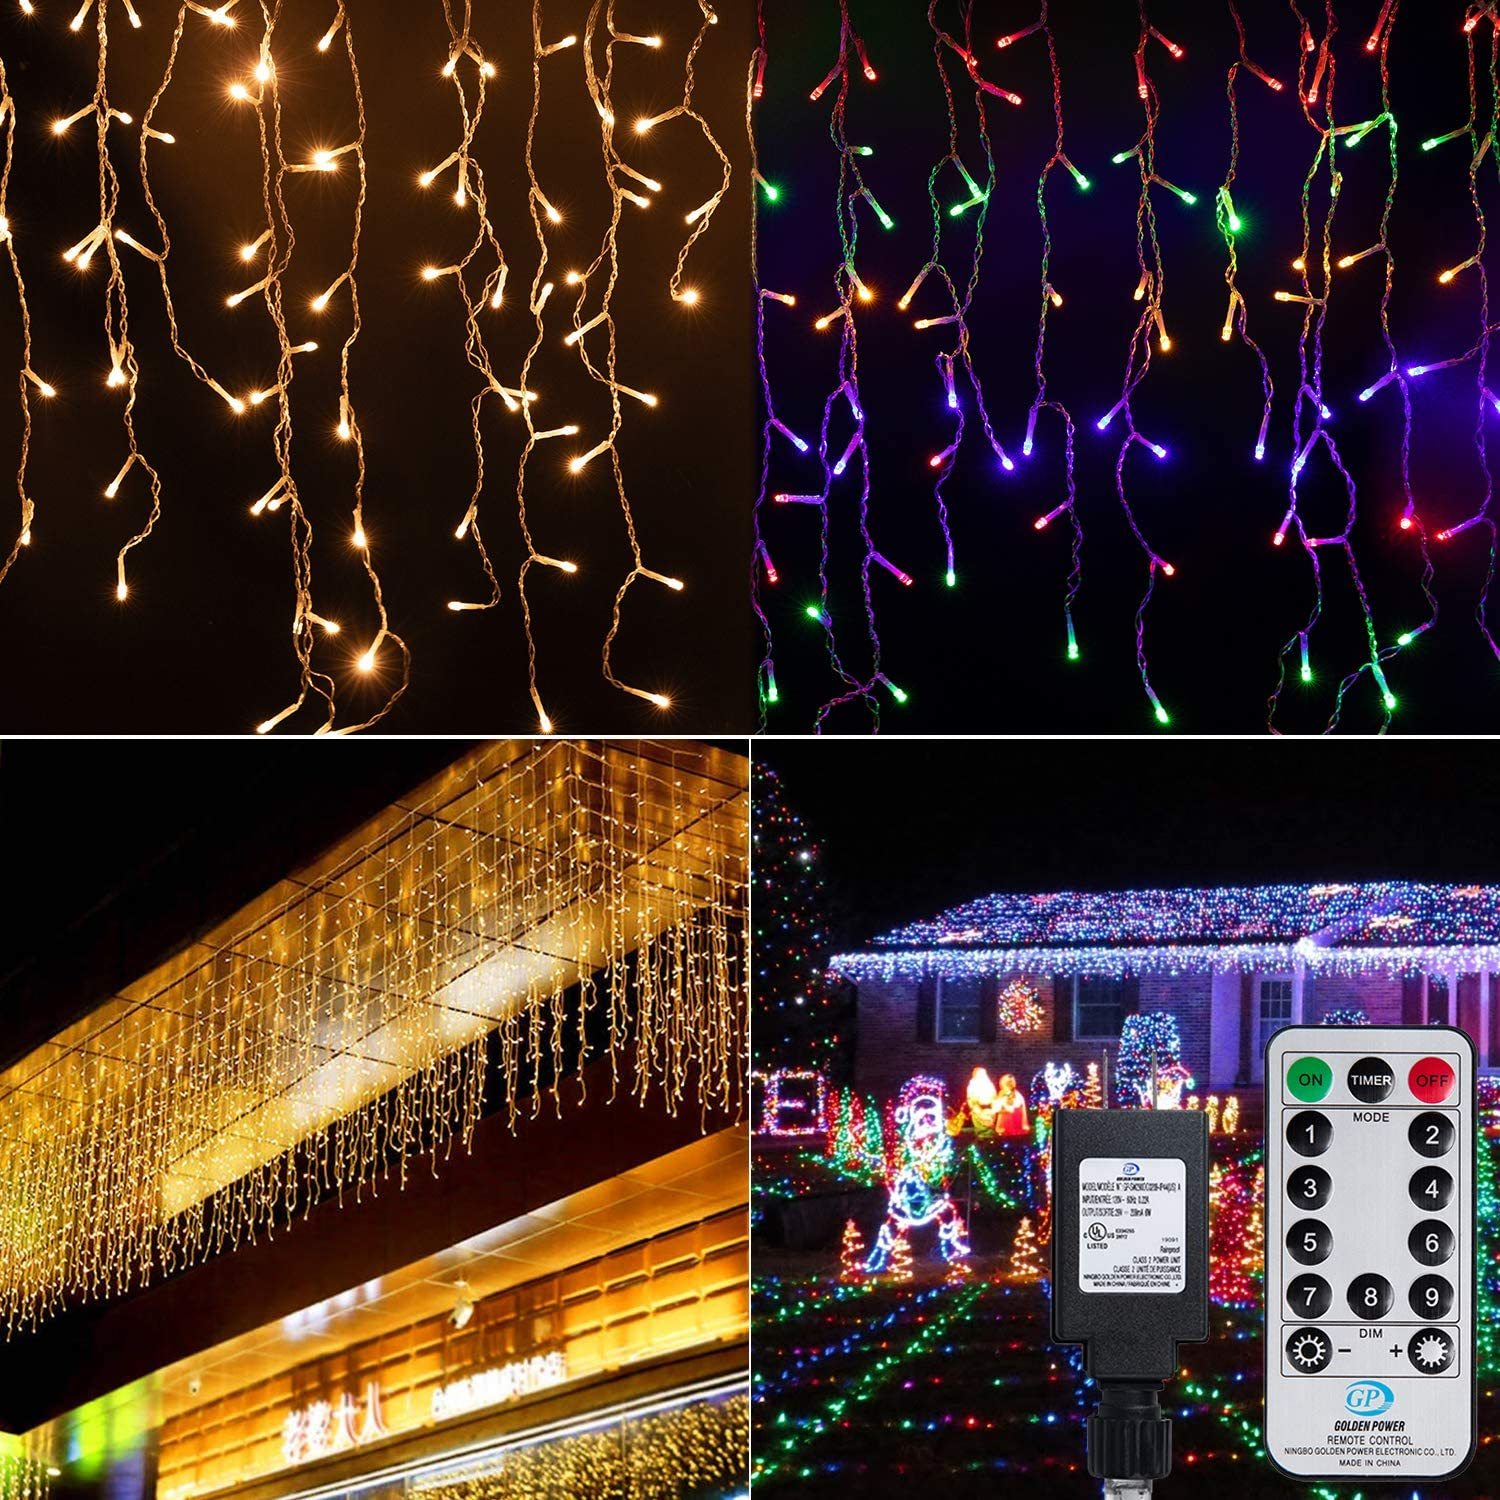 Color Changing Icicle Christmas Lights Outdoor, 19.6 Feet 306 Led Fairy Curtain Twinkle String Lights with Remote, Timer, Hanging Indoor Window Holiday Time Decorations Outside, Warm and Multicolor